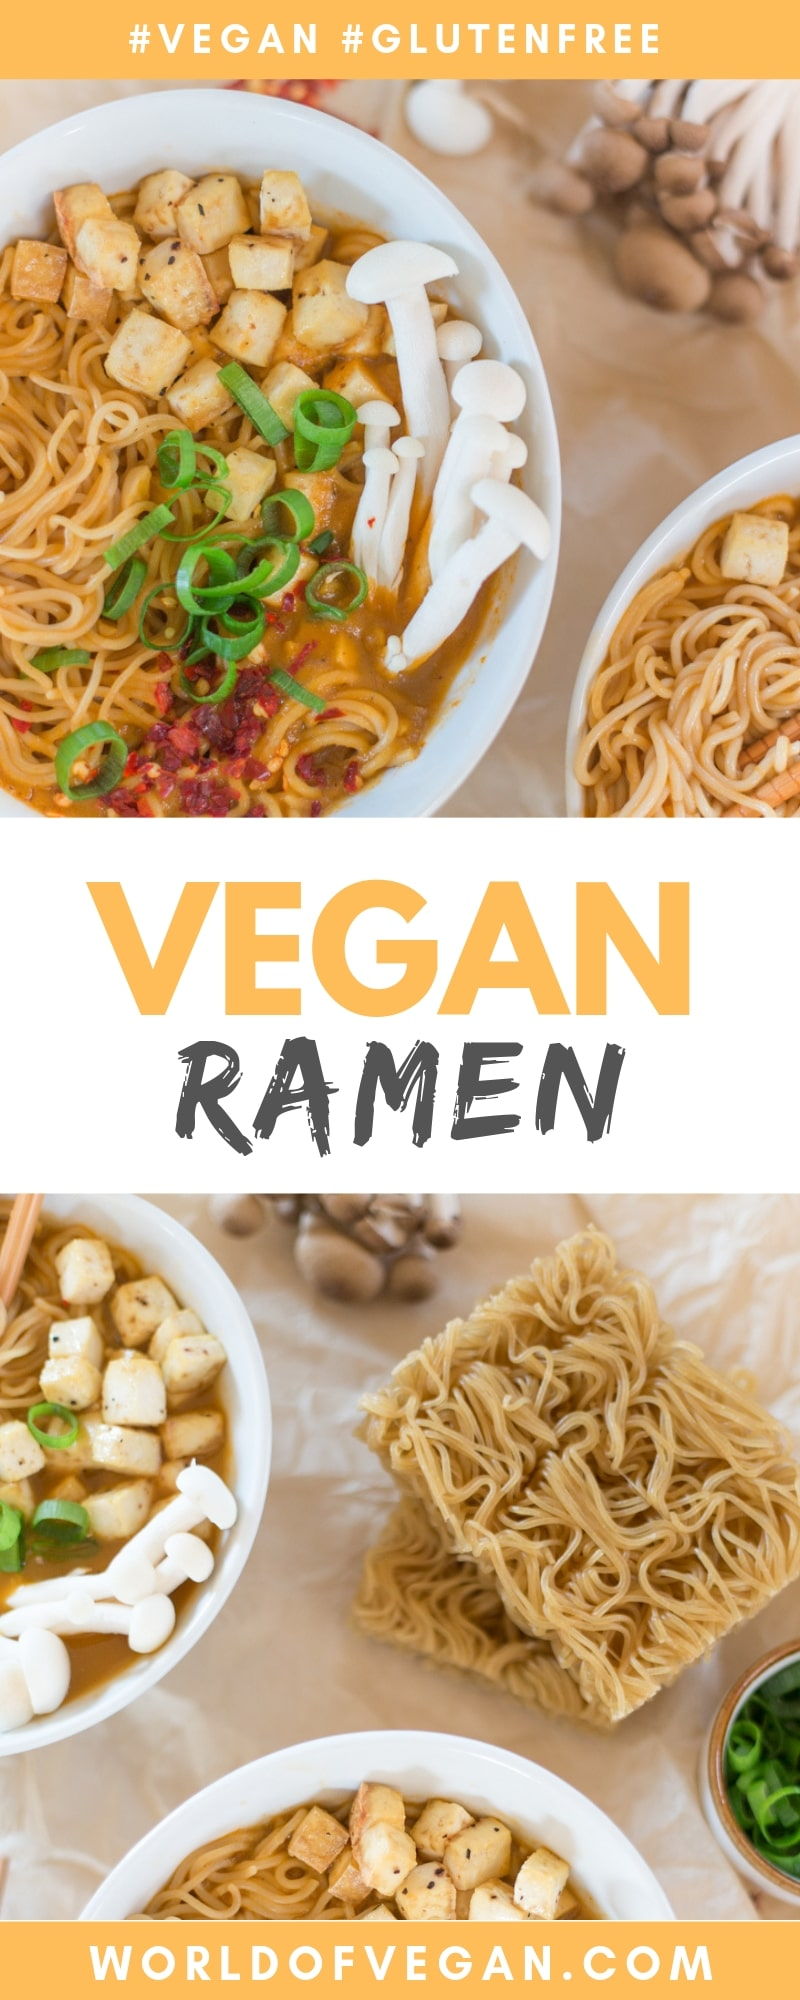 Vegan Ramen With Brown Rice Noodles | WorldofVegan.com #vegan #glutenfree #ramen #soup #recipe #dairyfree #worldofvegan